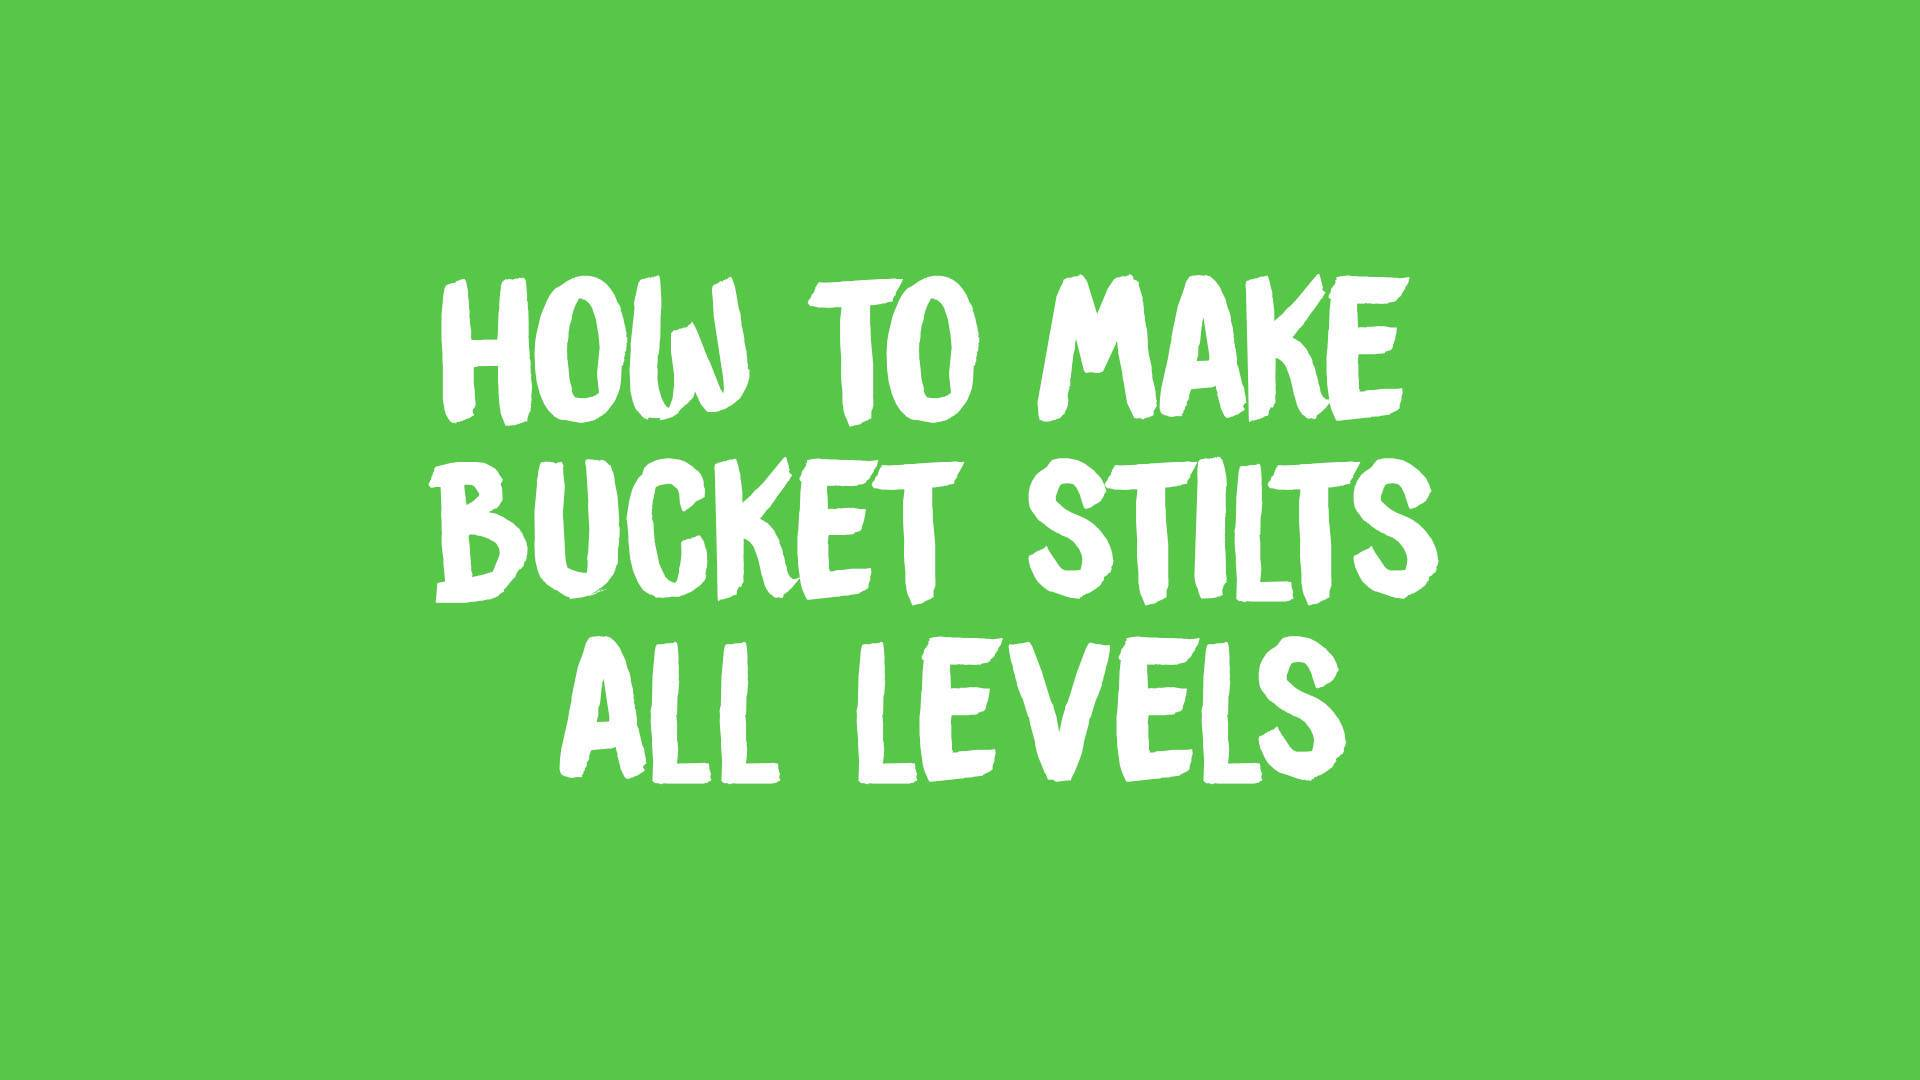 Make Bucket Stilts banner